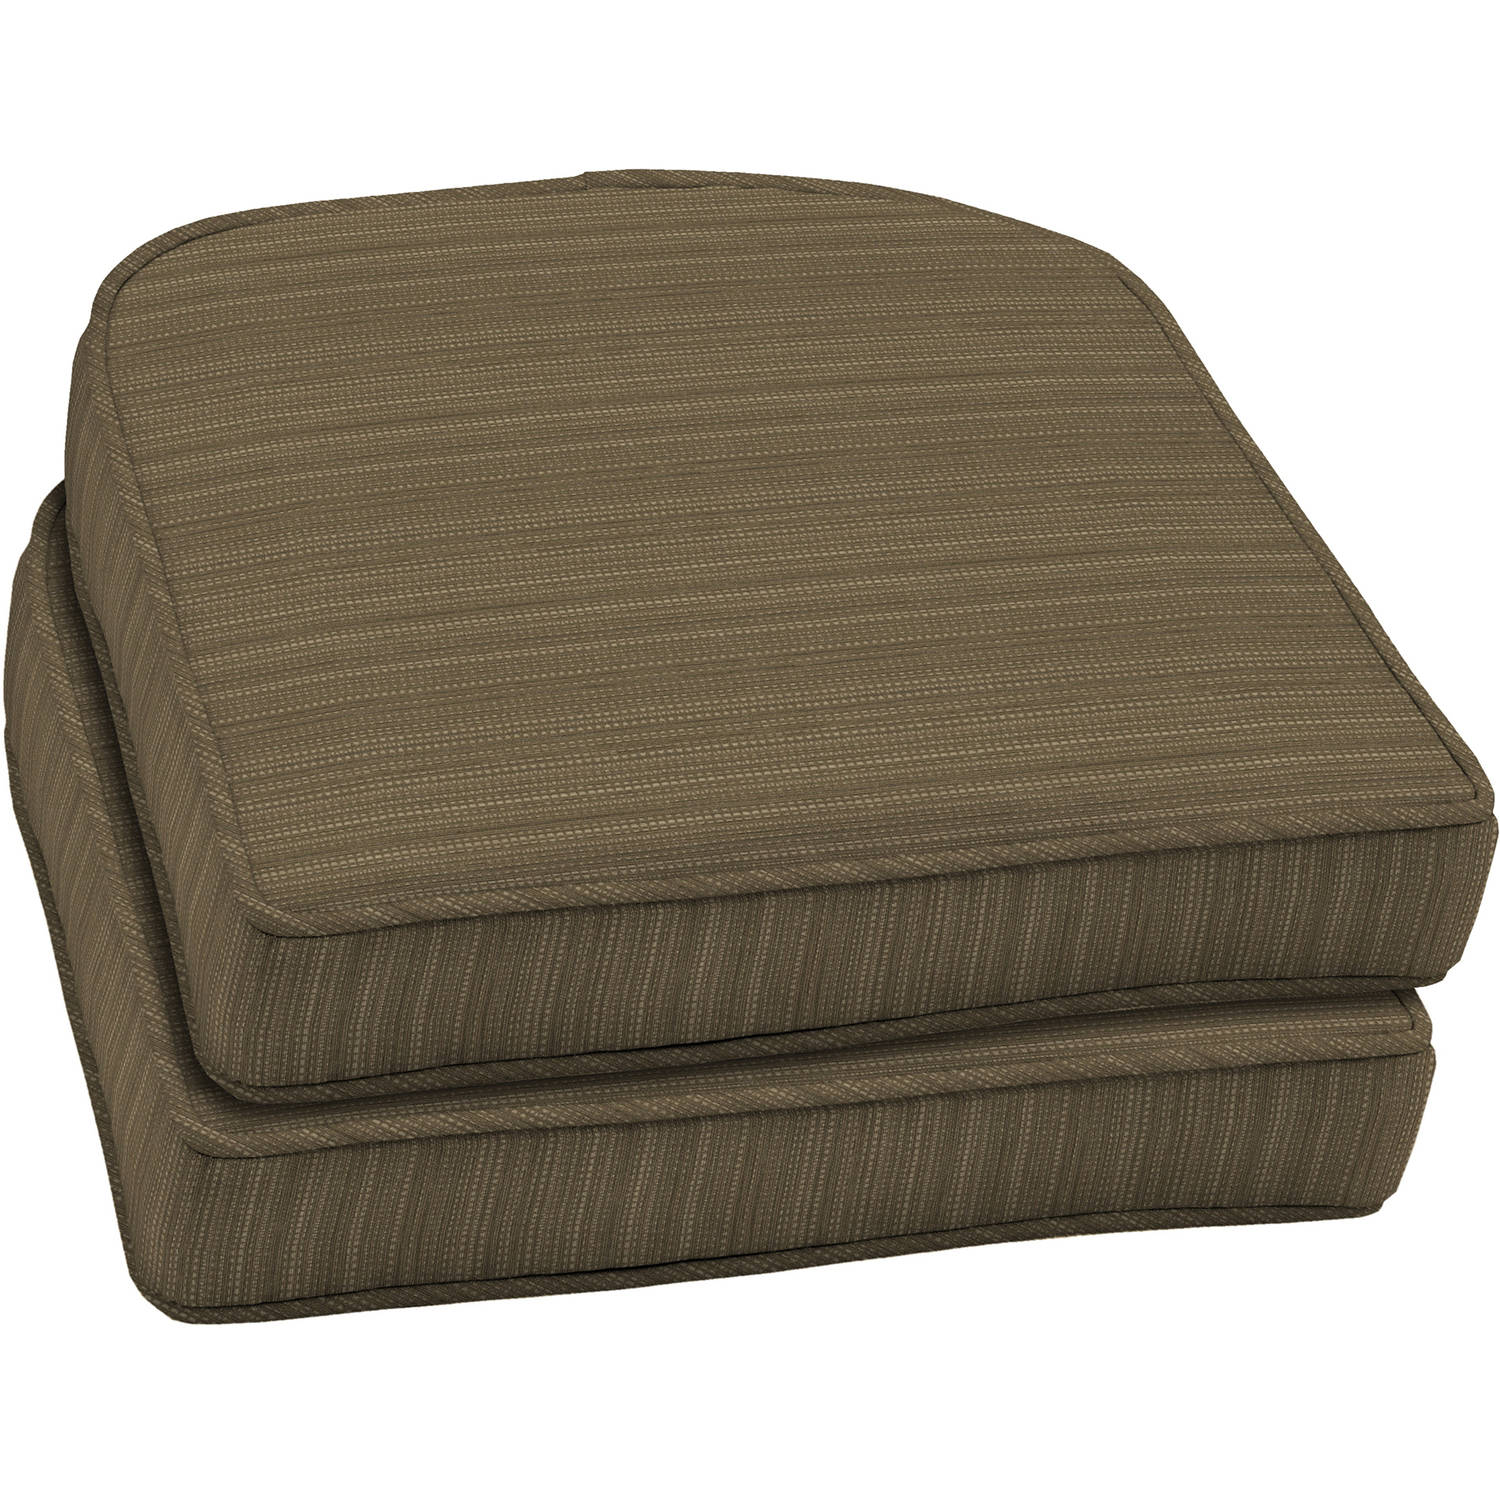 Bed chair pillow walmart - Bed Chair Pillow Walmart 5